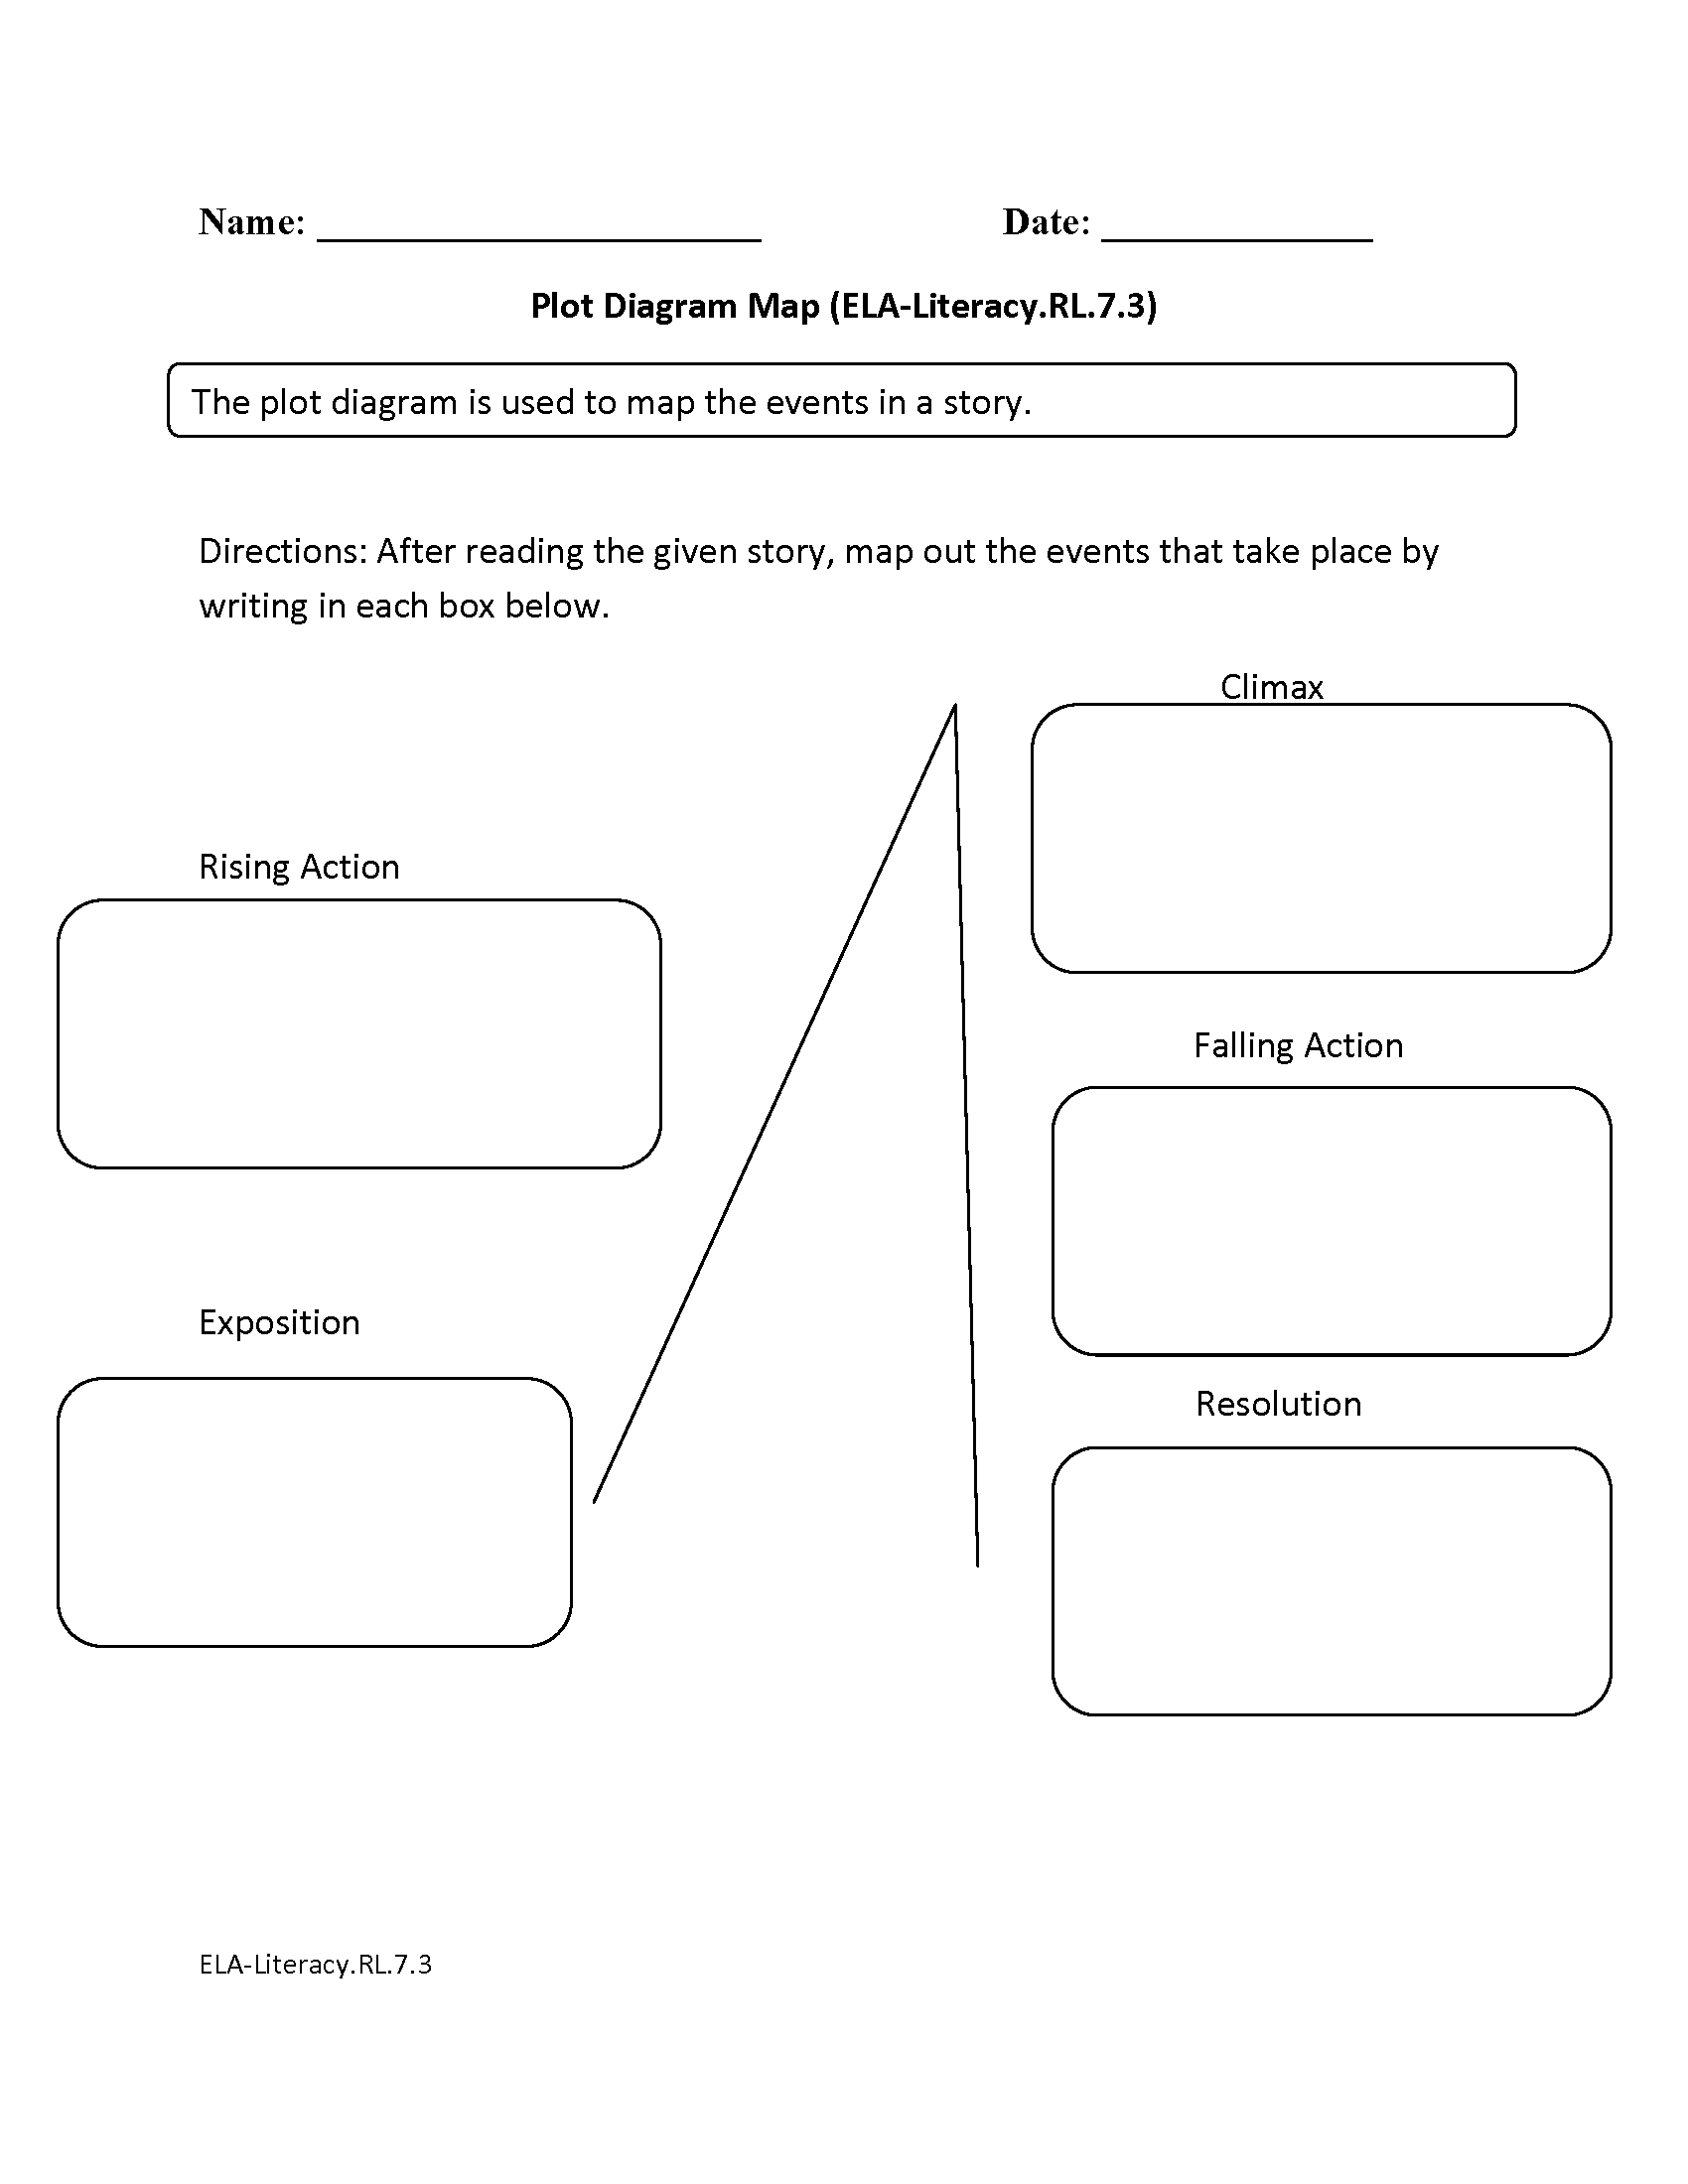 Worksheets Plot Structure Worksheet 7th grade common core reading literature worksheets plot diagram map ela literacy rl 7 3 worksheet